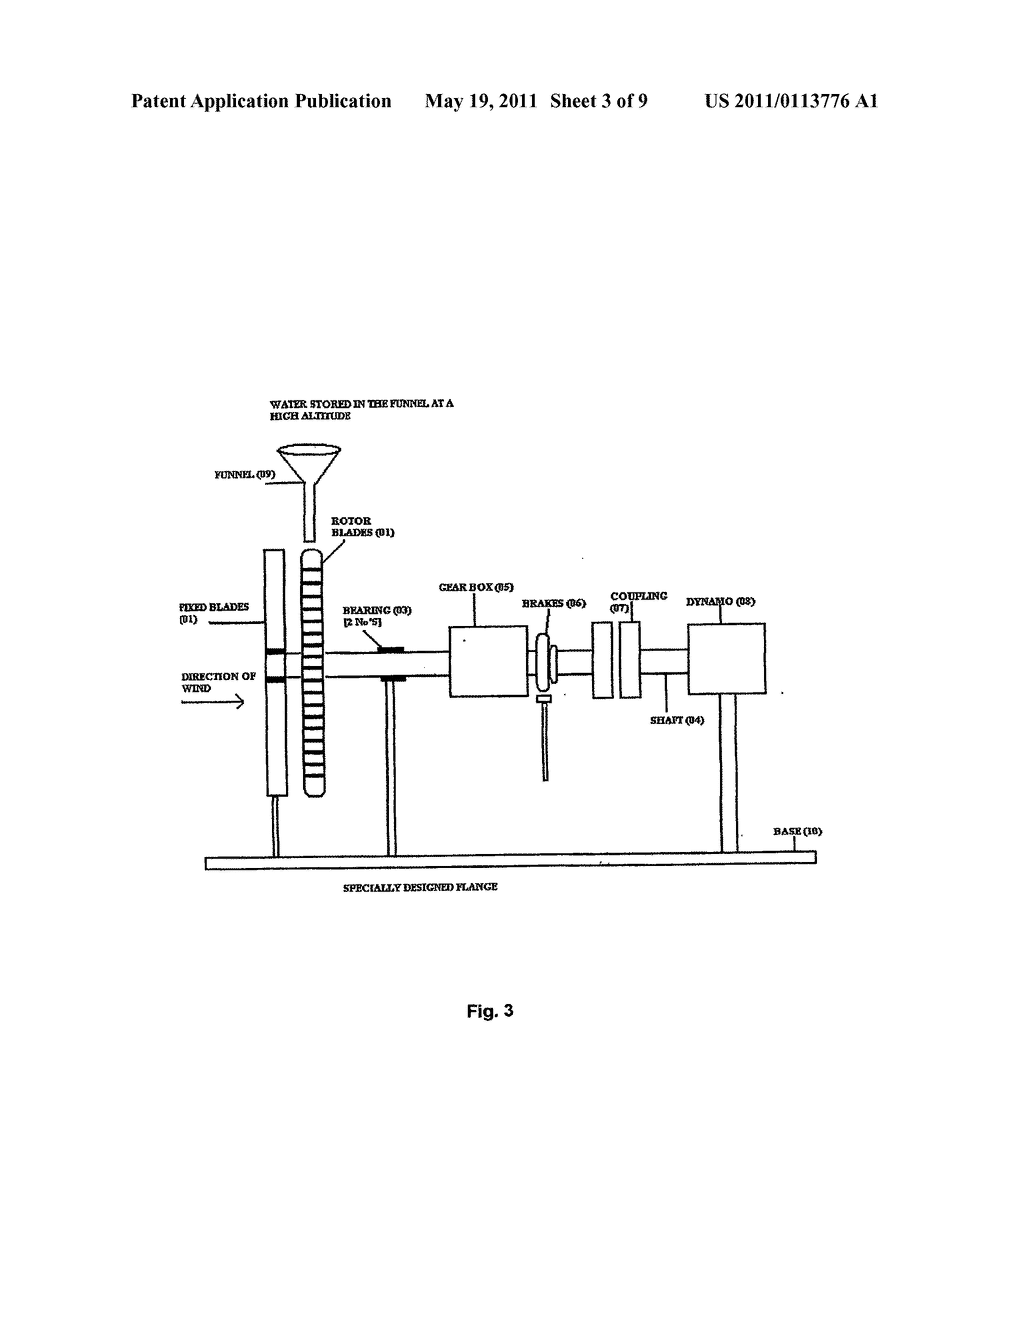 Hydro Power Plant With Diagram Wiring Library Hydel